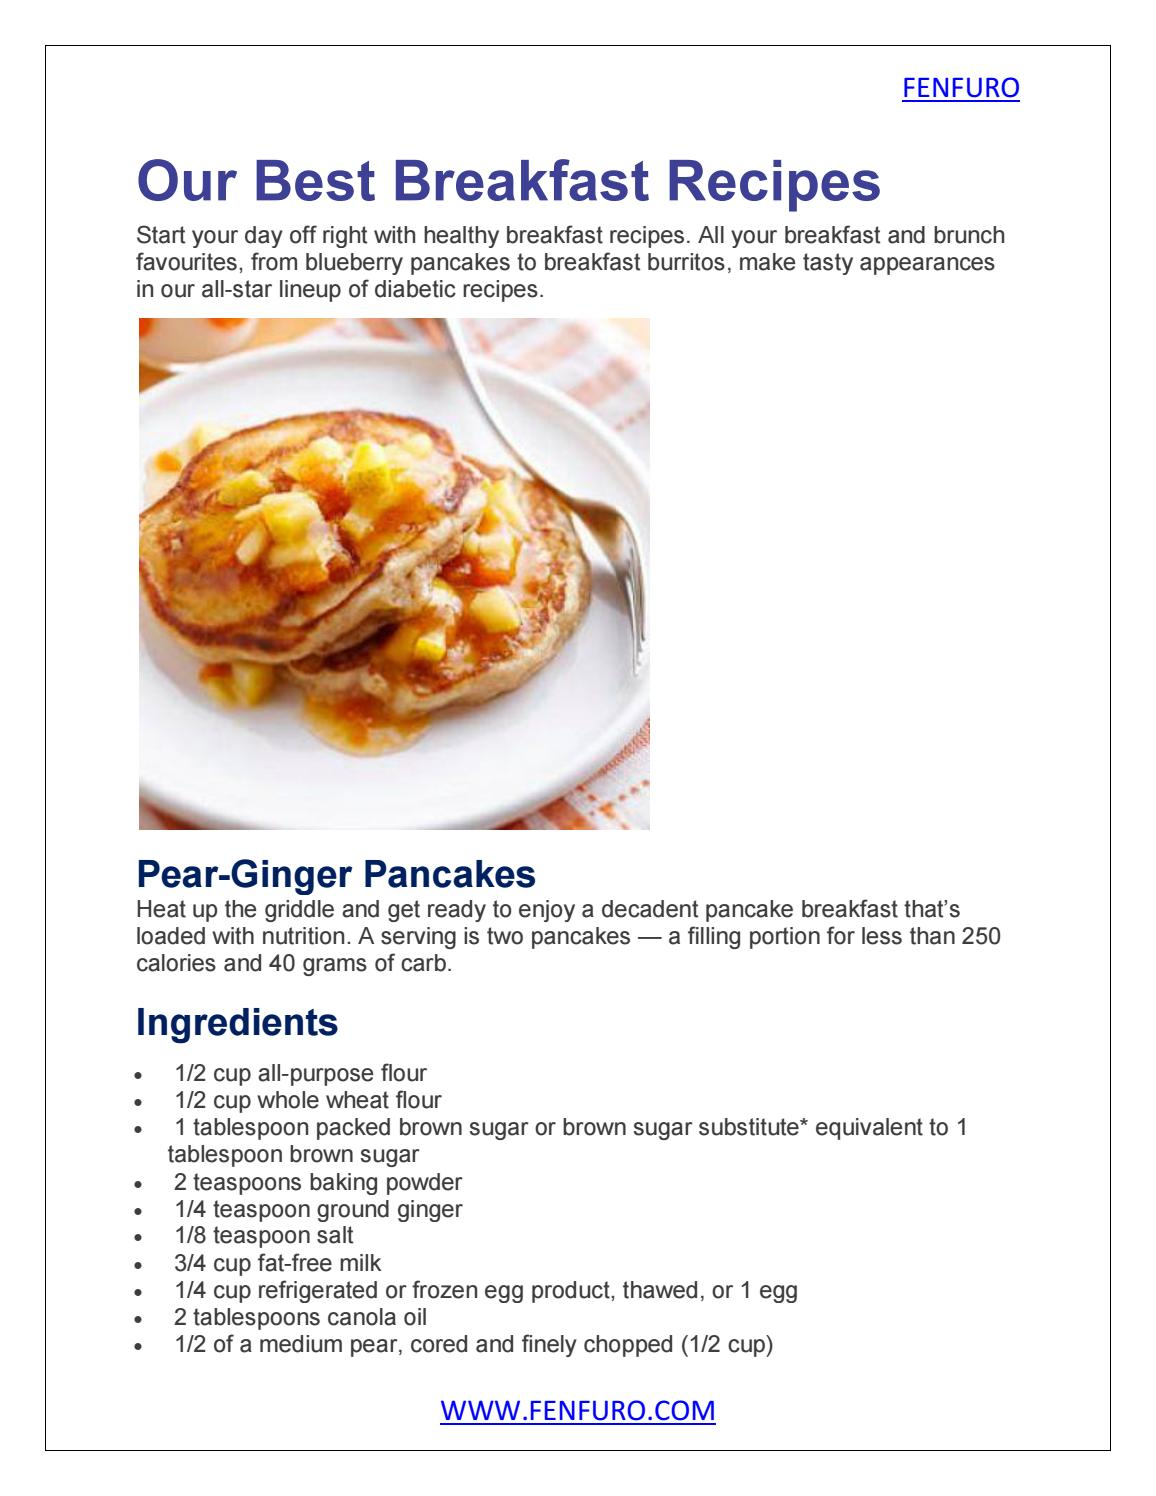 Our Best Breakfast Recipes By Furocyst1 Issuu